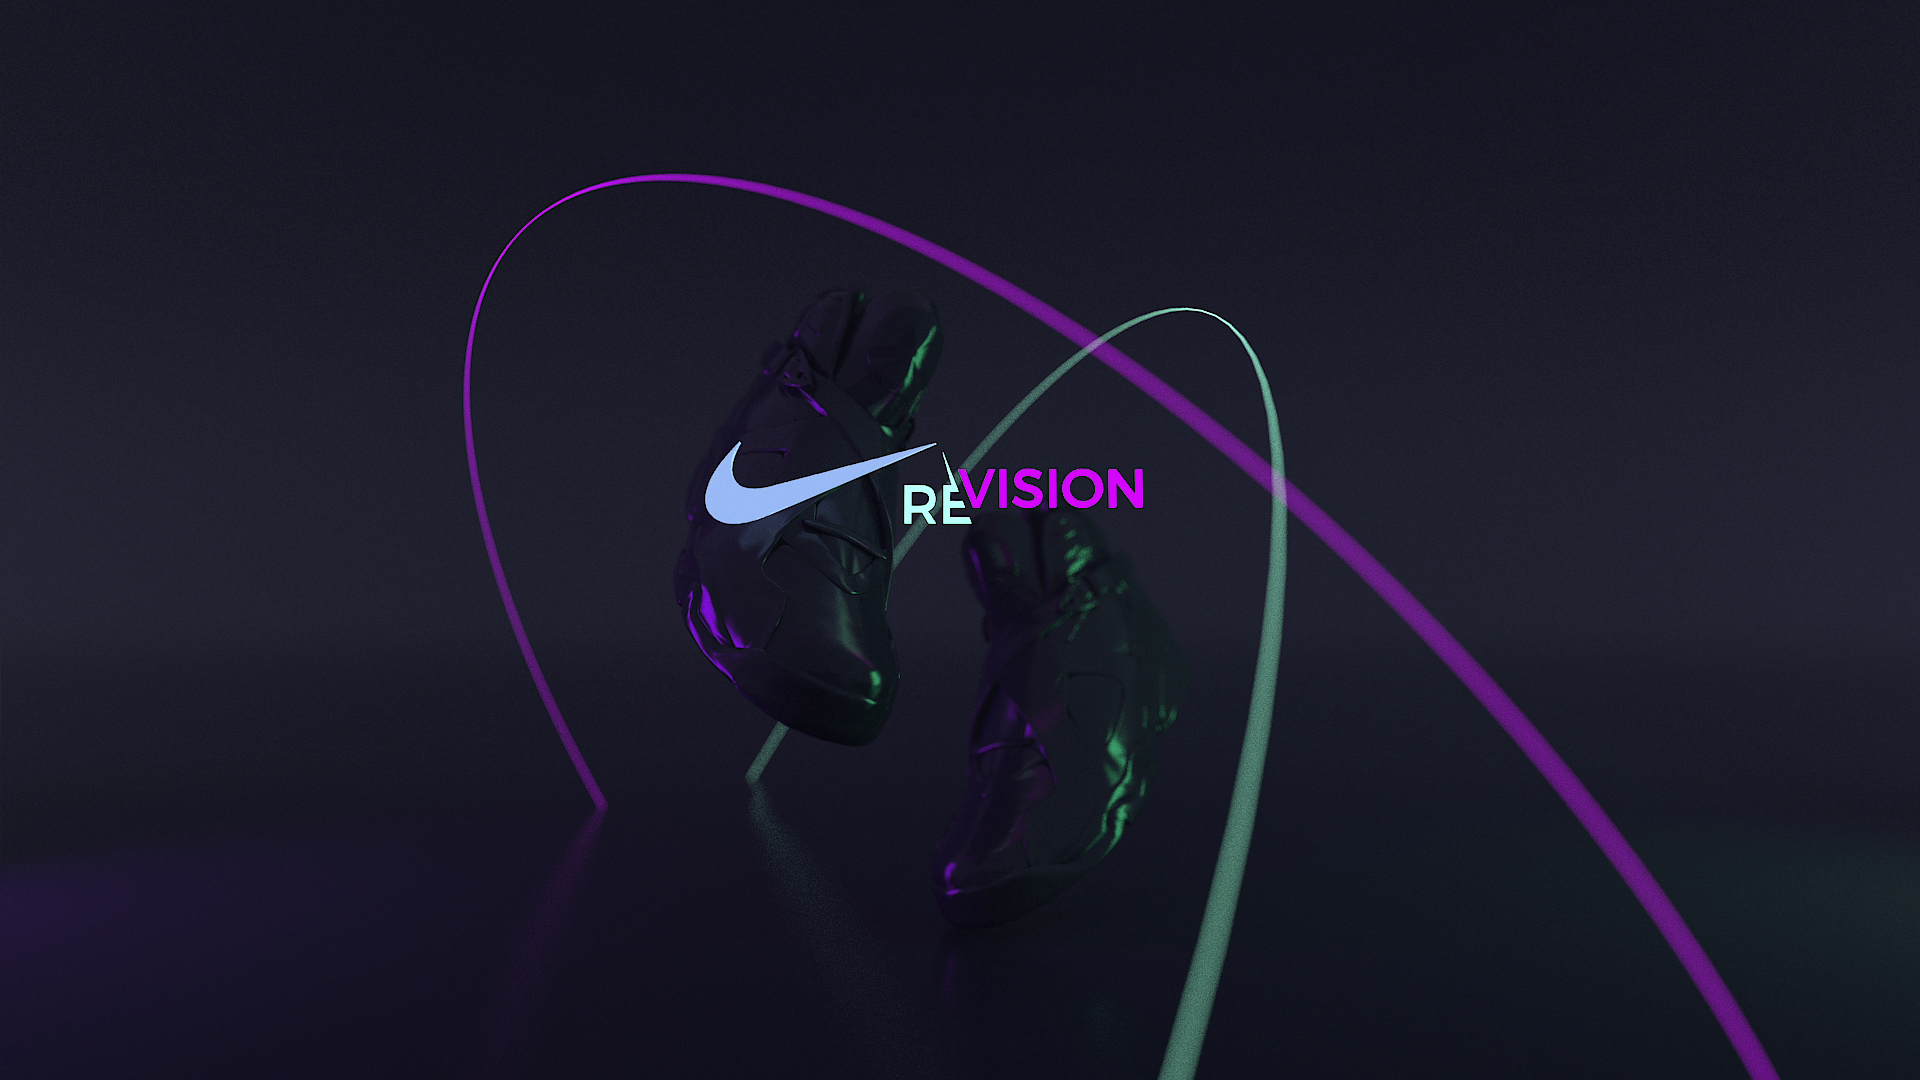 Nike REVISION